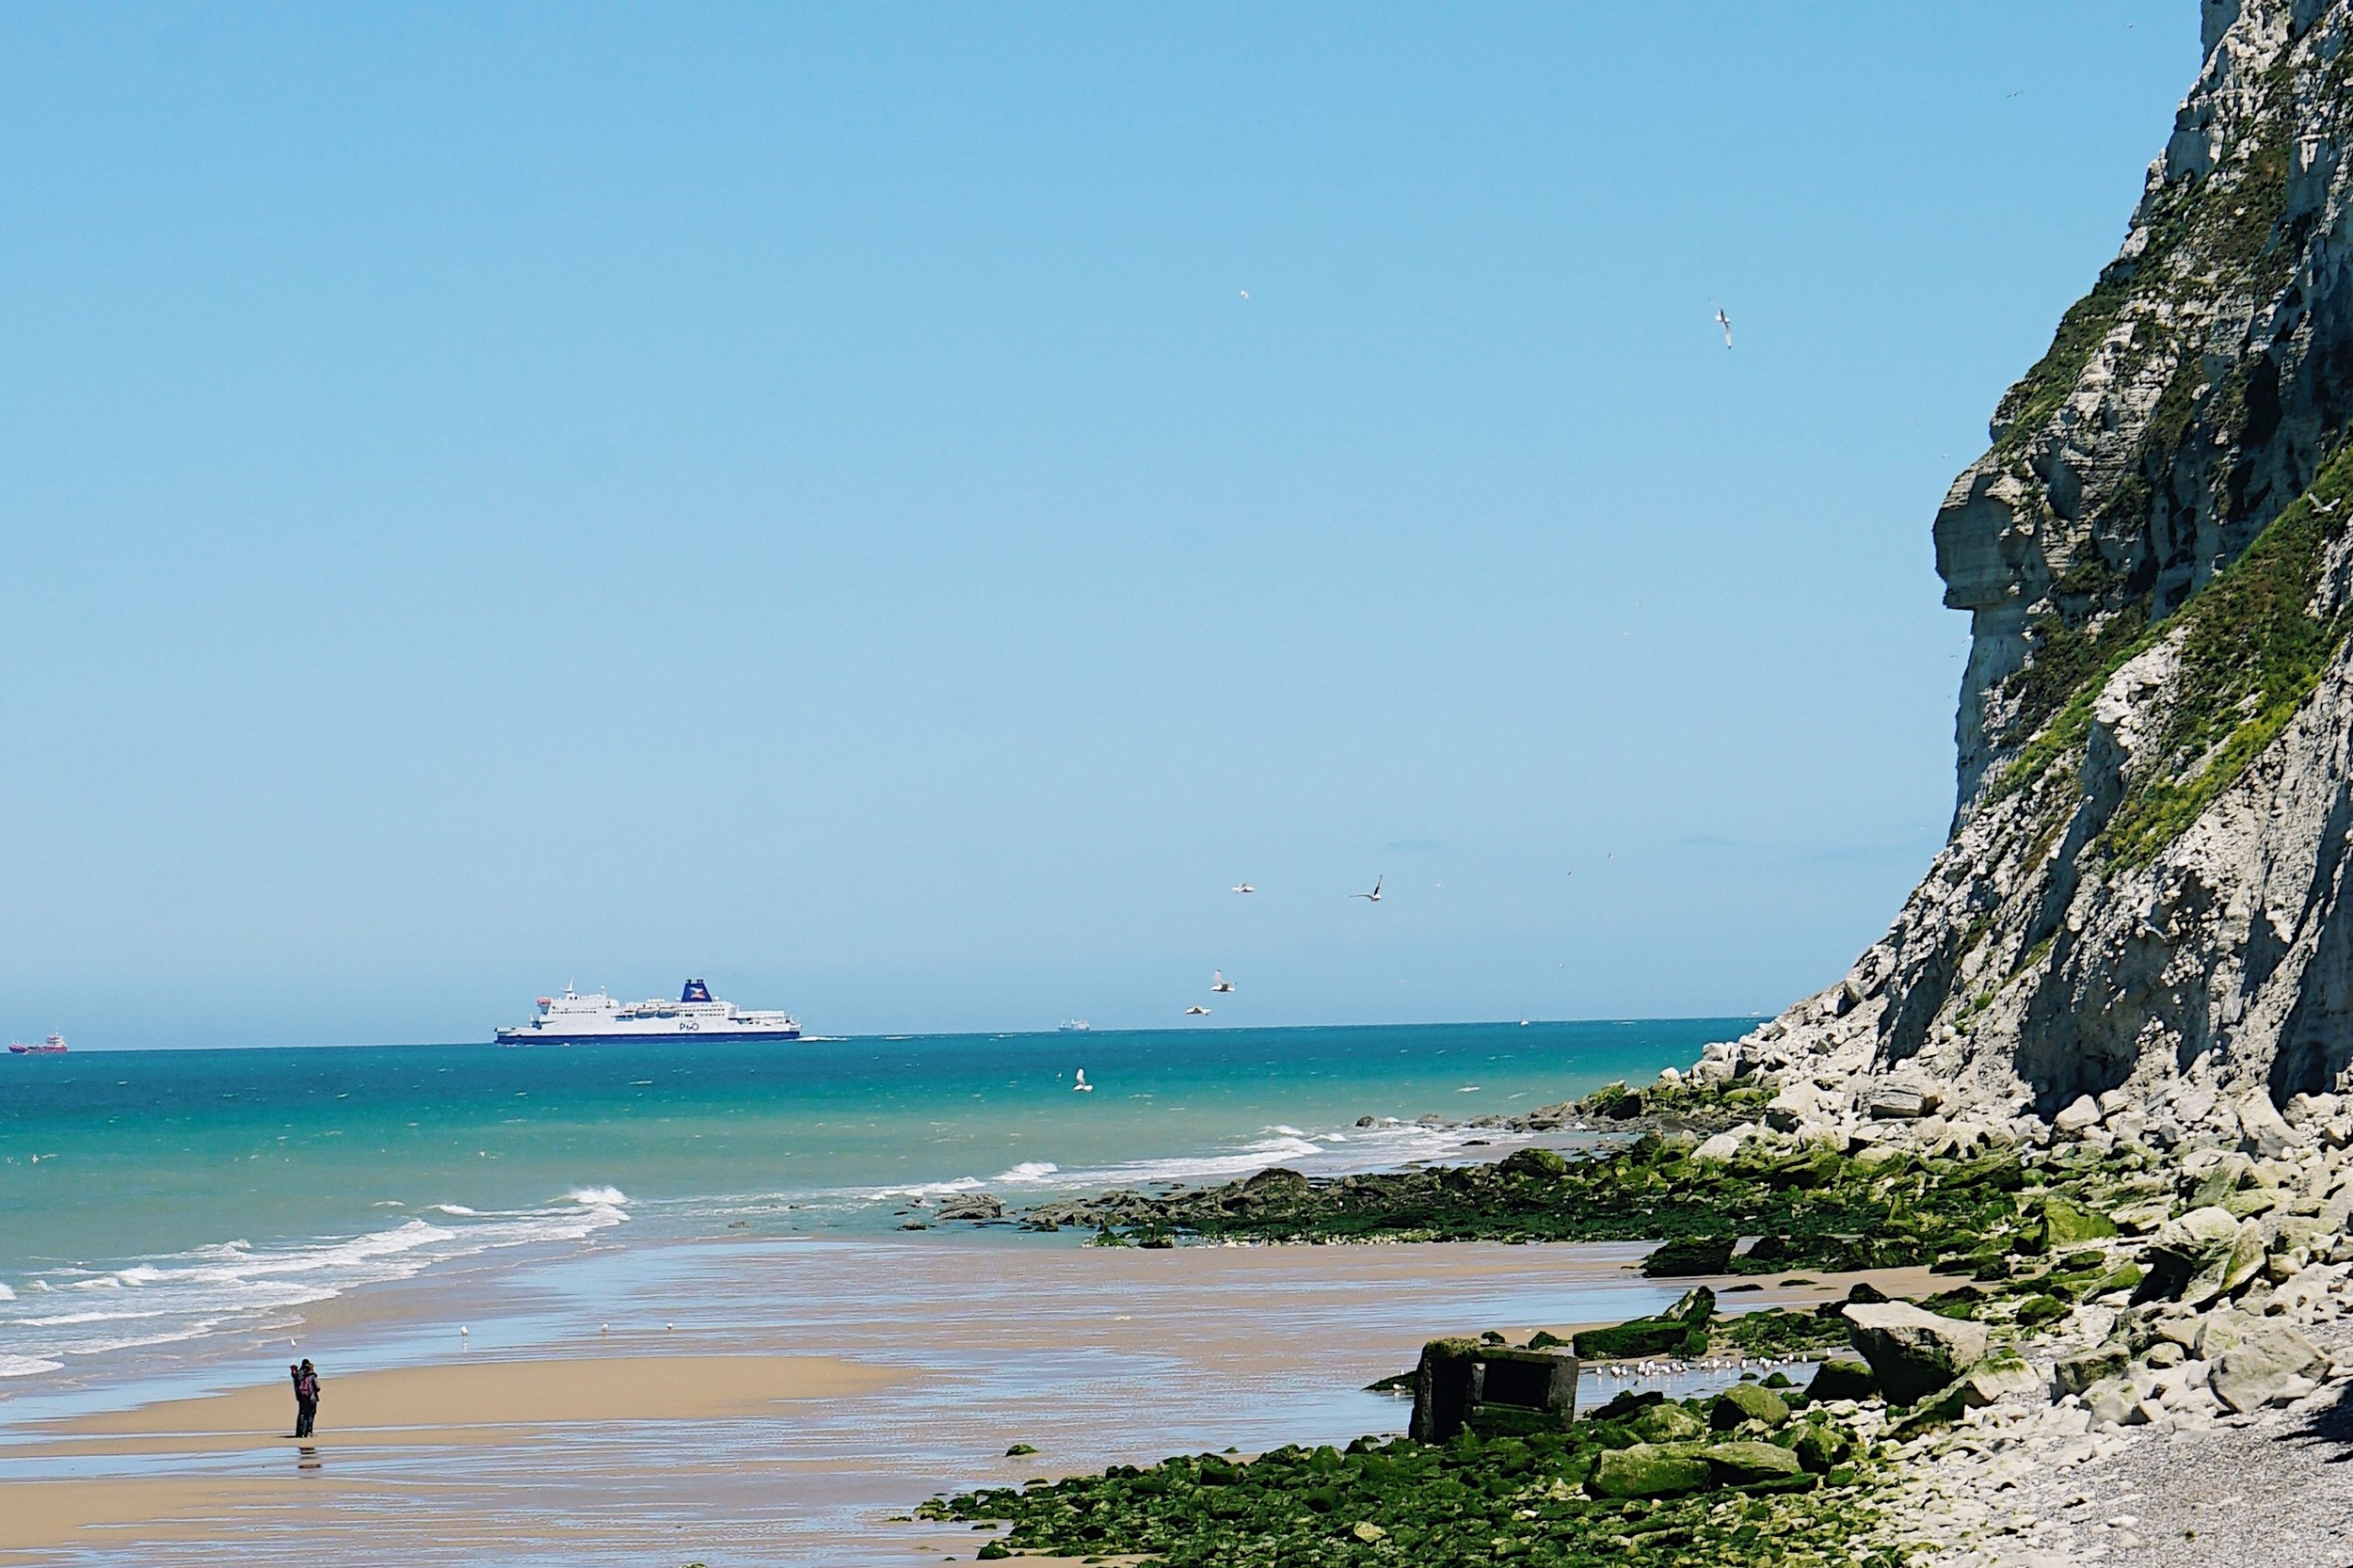 A P&O Ferries ferry leaving Calais and heading back to Blighty!